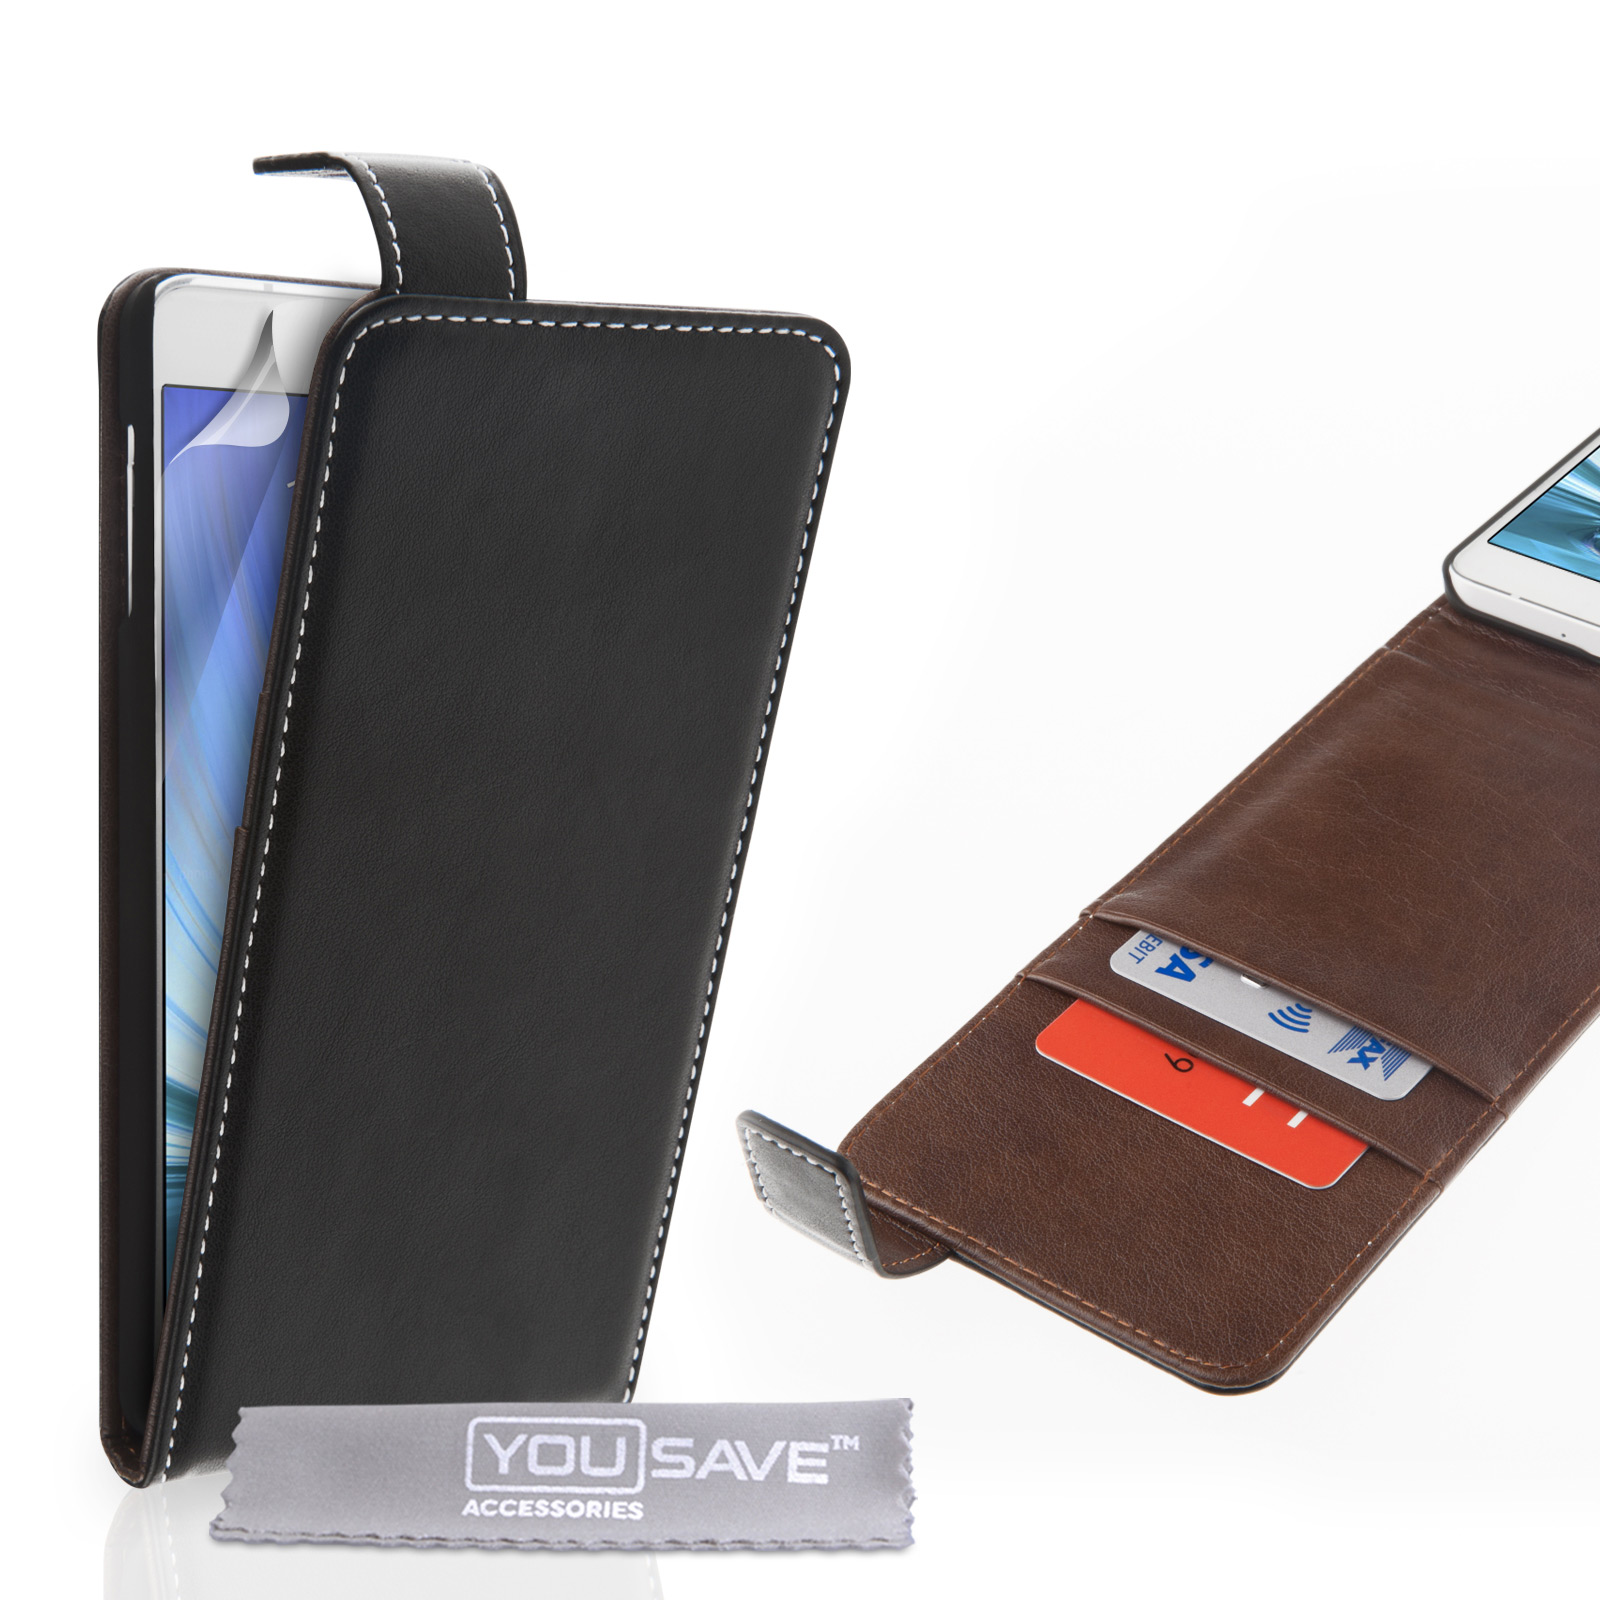 YouSave Samsung Galaxy A7 Leather-Effect Flip Case with Slots – Black